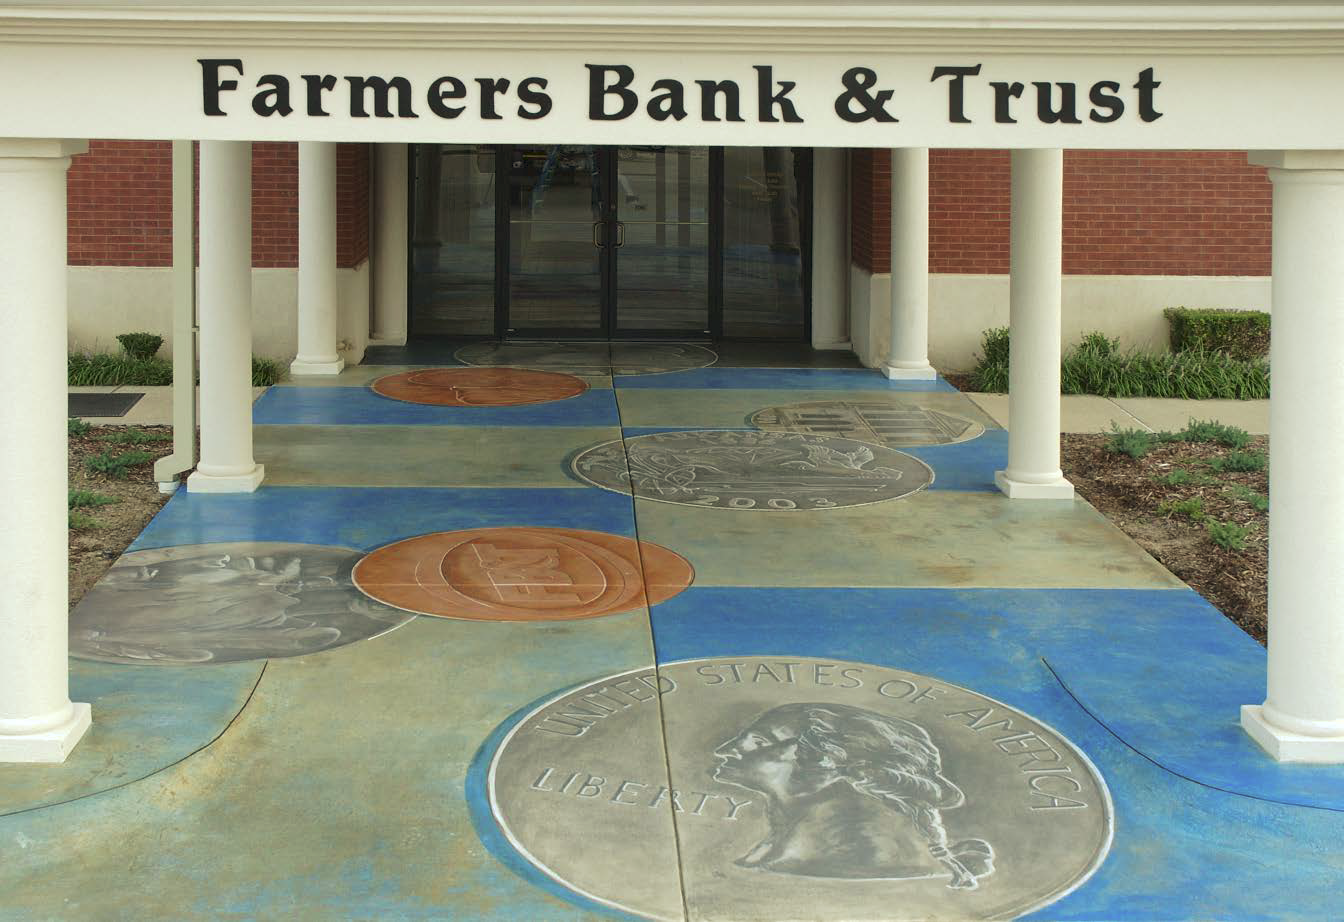 Bank entrance that has been stained with images of coins.